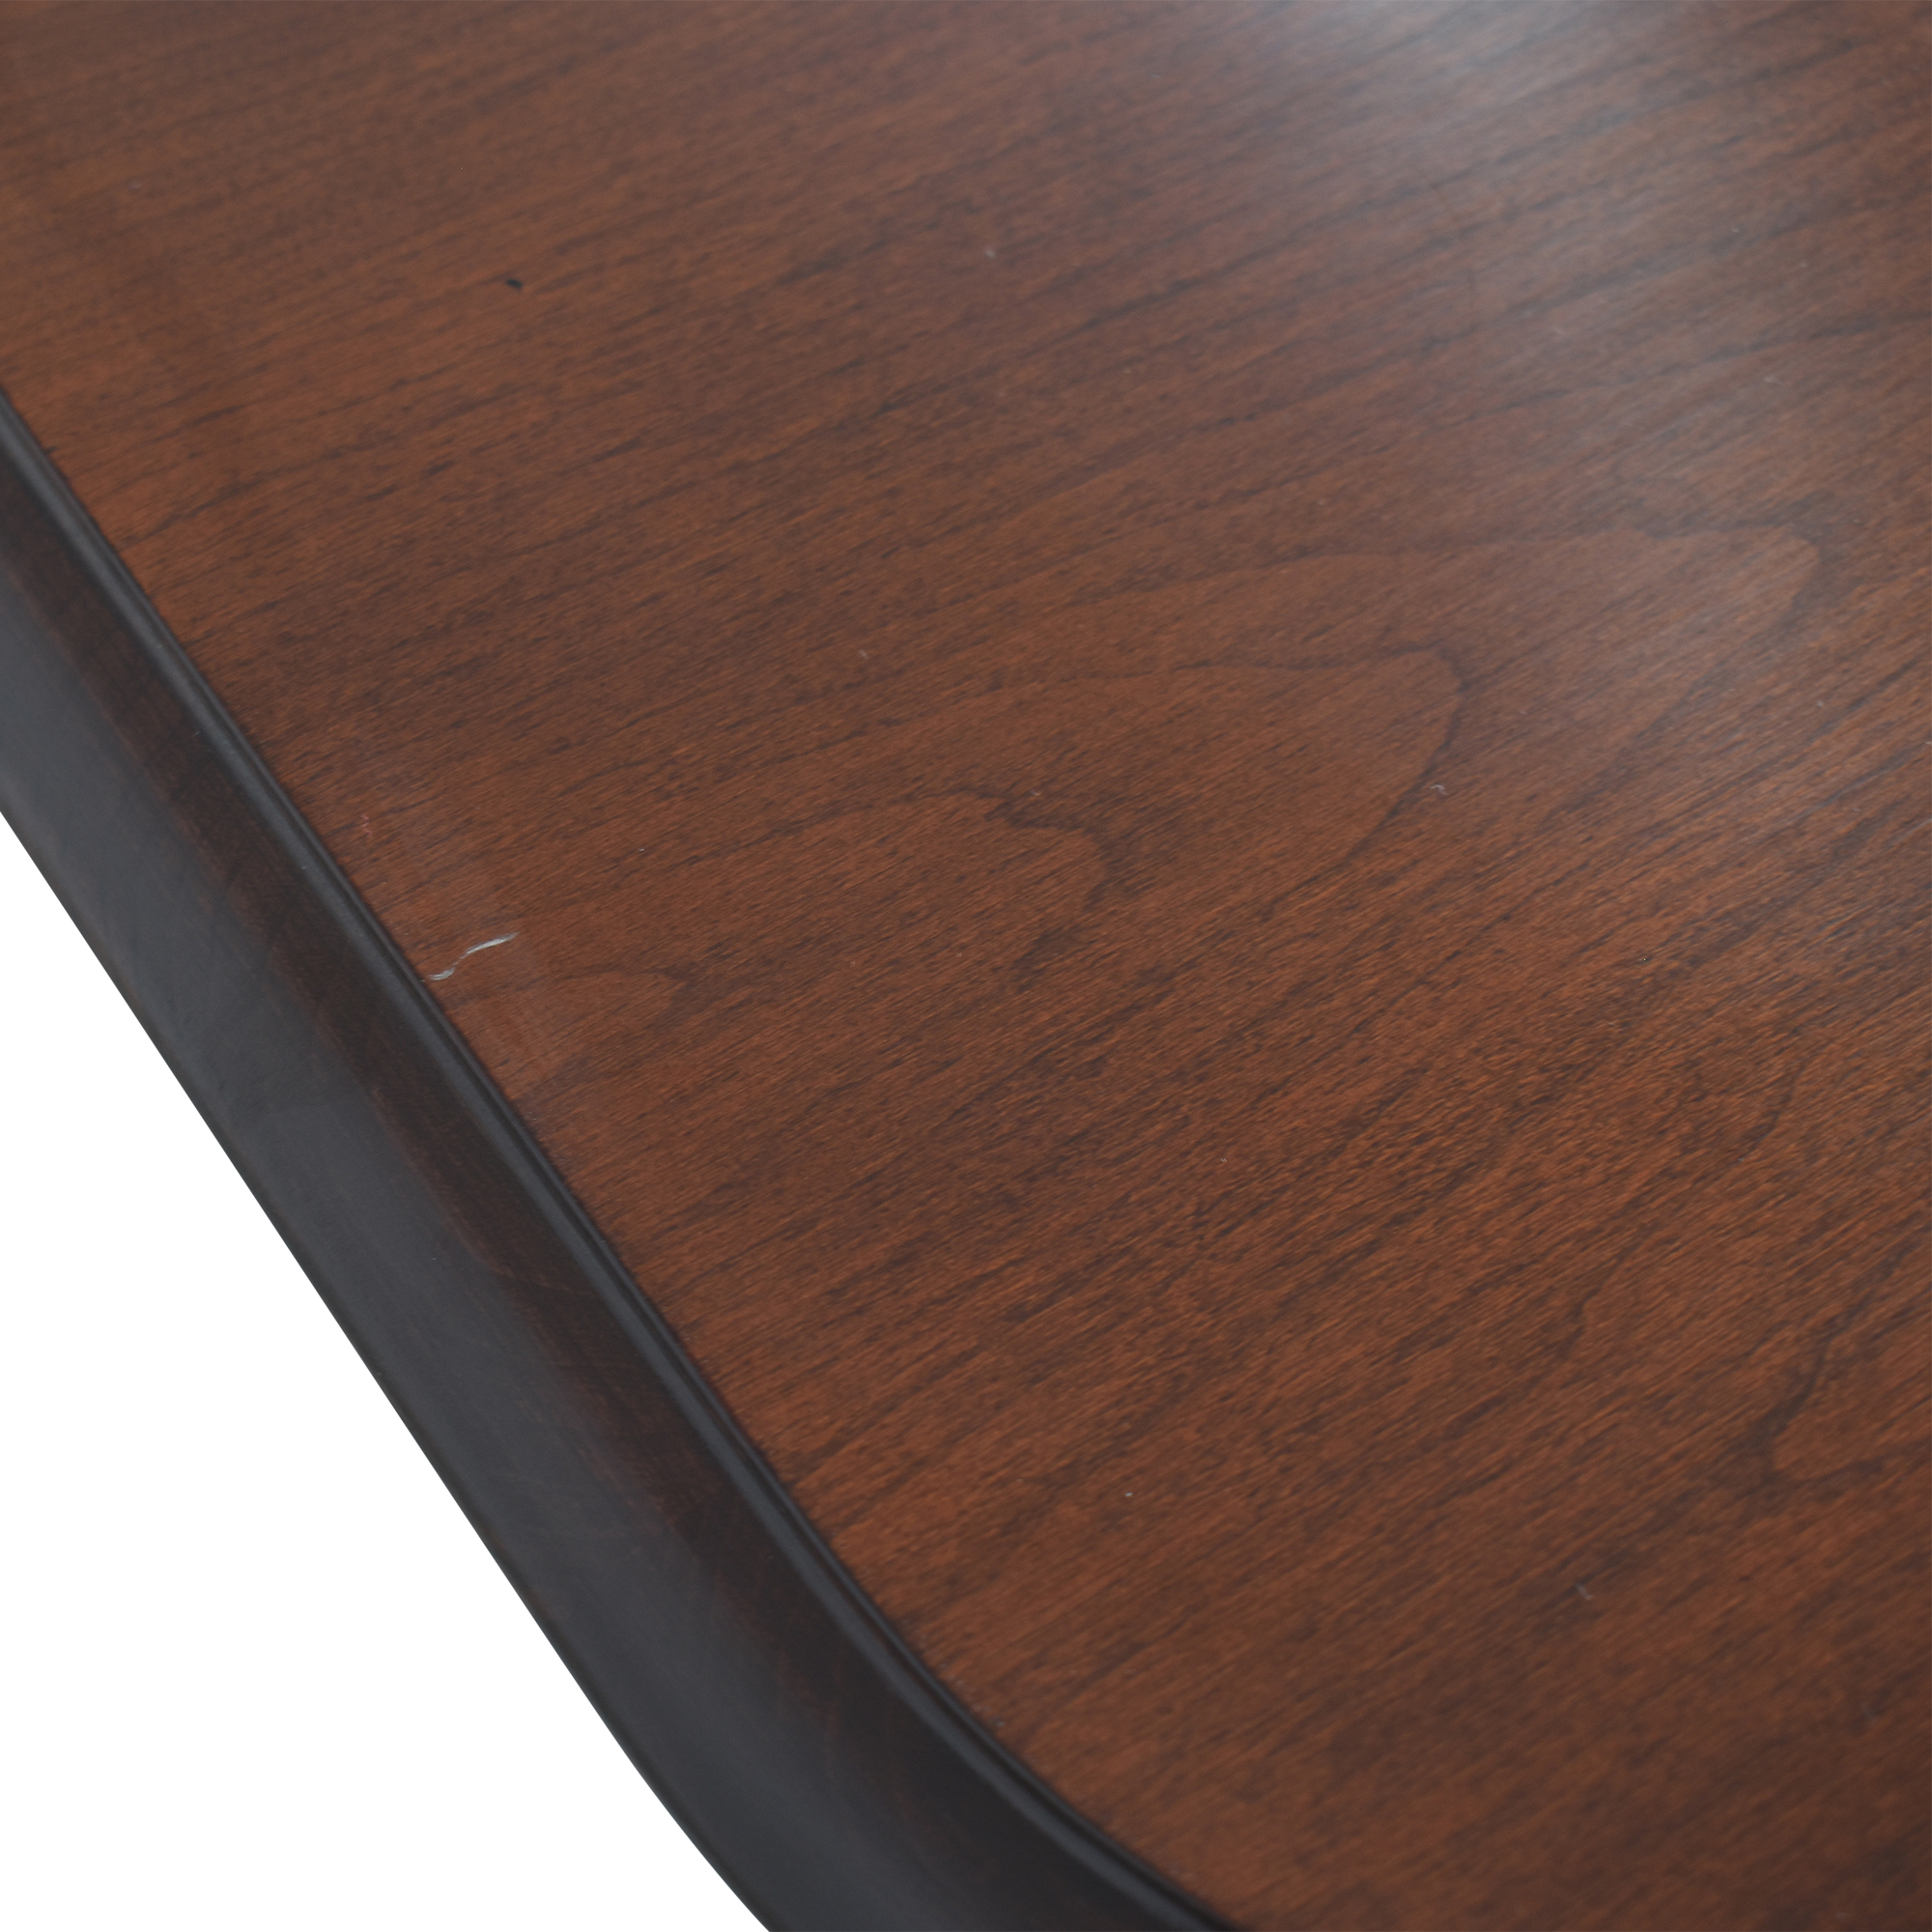 buy The Colonial Furniture Company Extendable Dining Table The Colonial Furniture Company